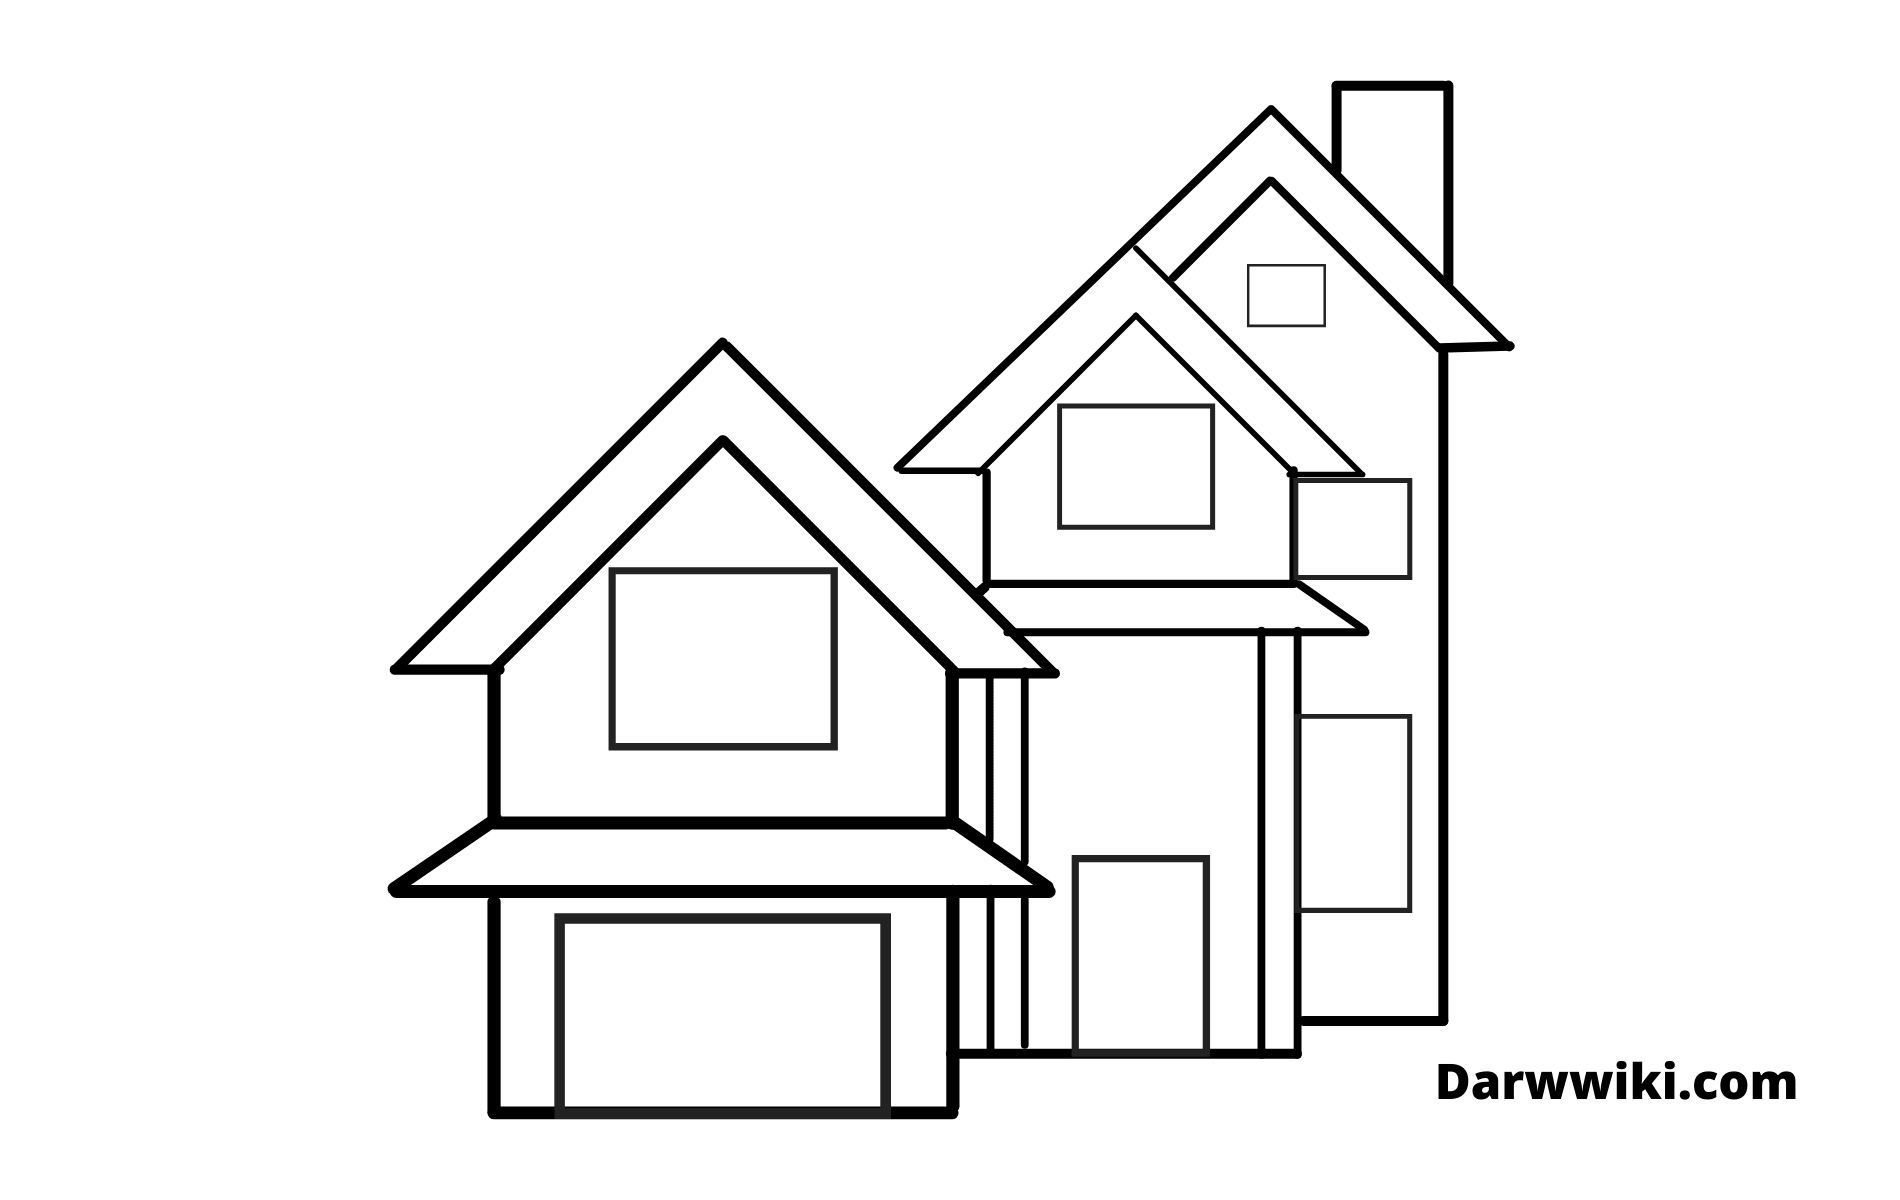 How To Draw House Step 7- Draw the Outlines of the Windows and Door